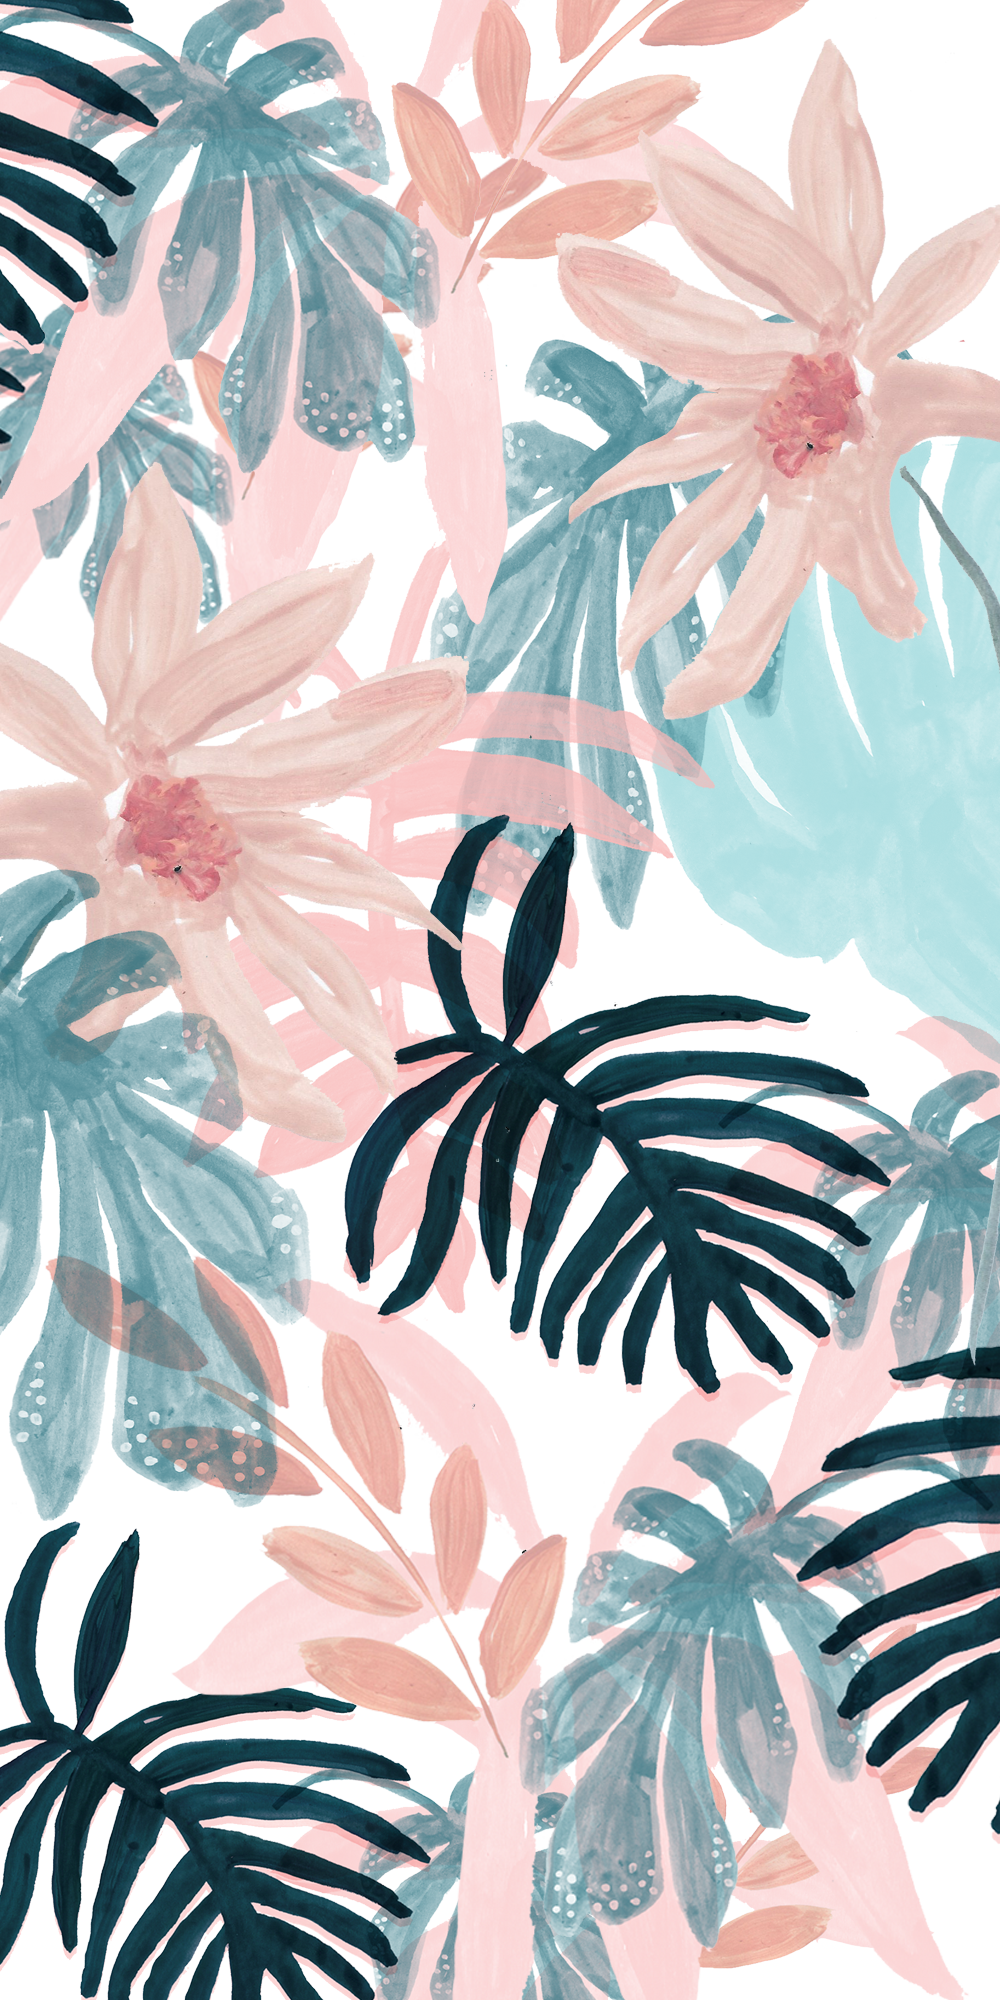 Pink Spring Casetify Iphone Art Design Floral Flowers Tropical Wallpaper Spring Wallpaper Floral Wallpaper